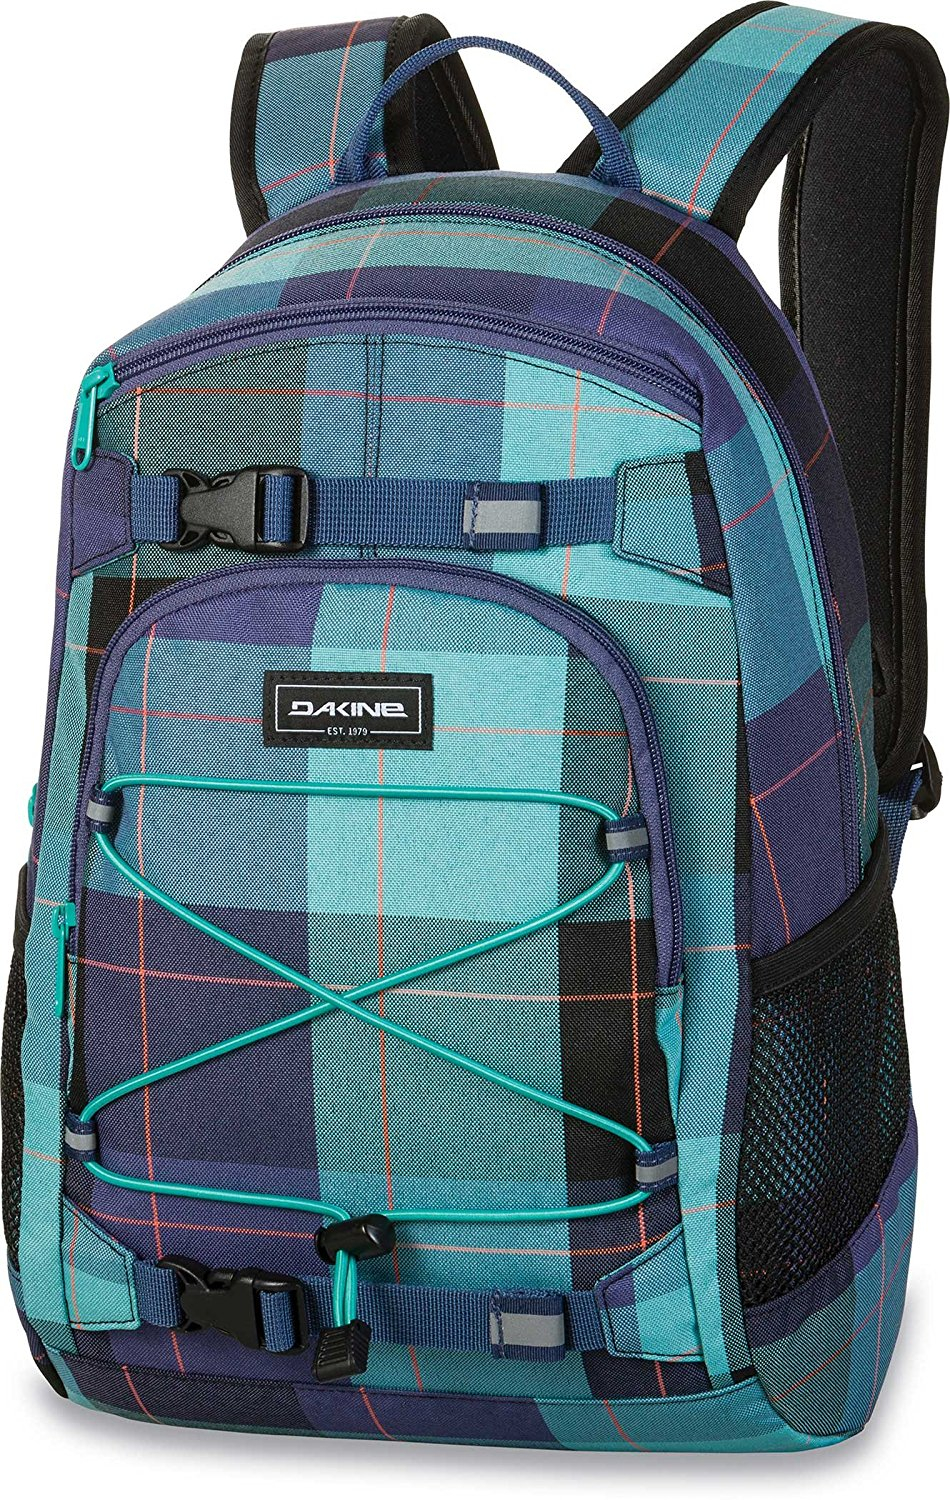 cadbc7dc62ff6 Get Quotations · Dakine Boys Grom Day Pack